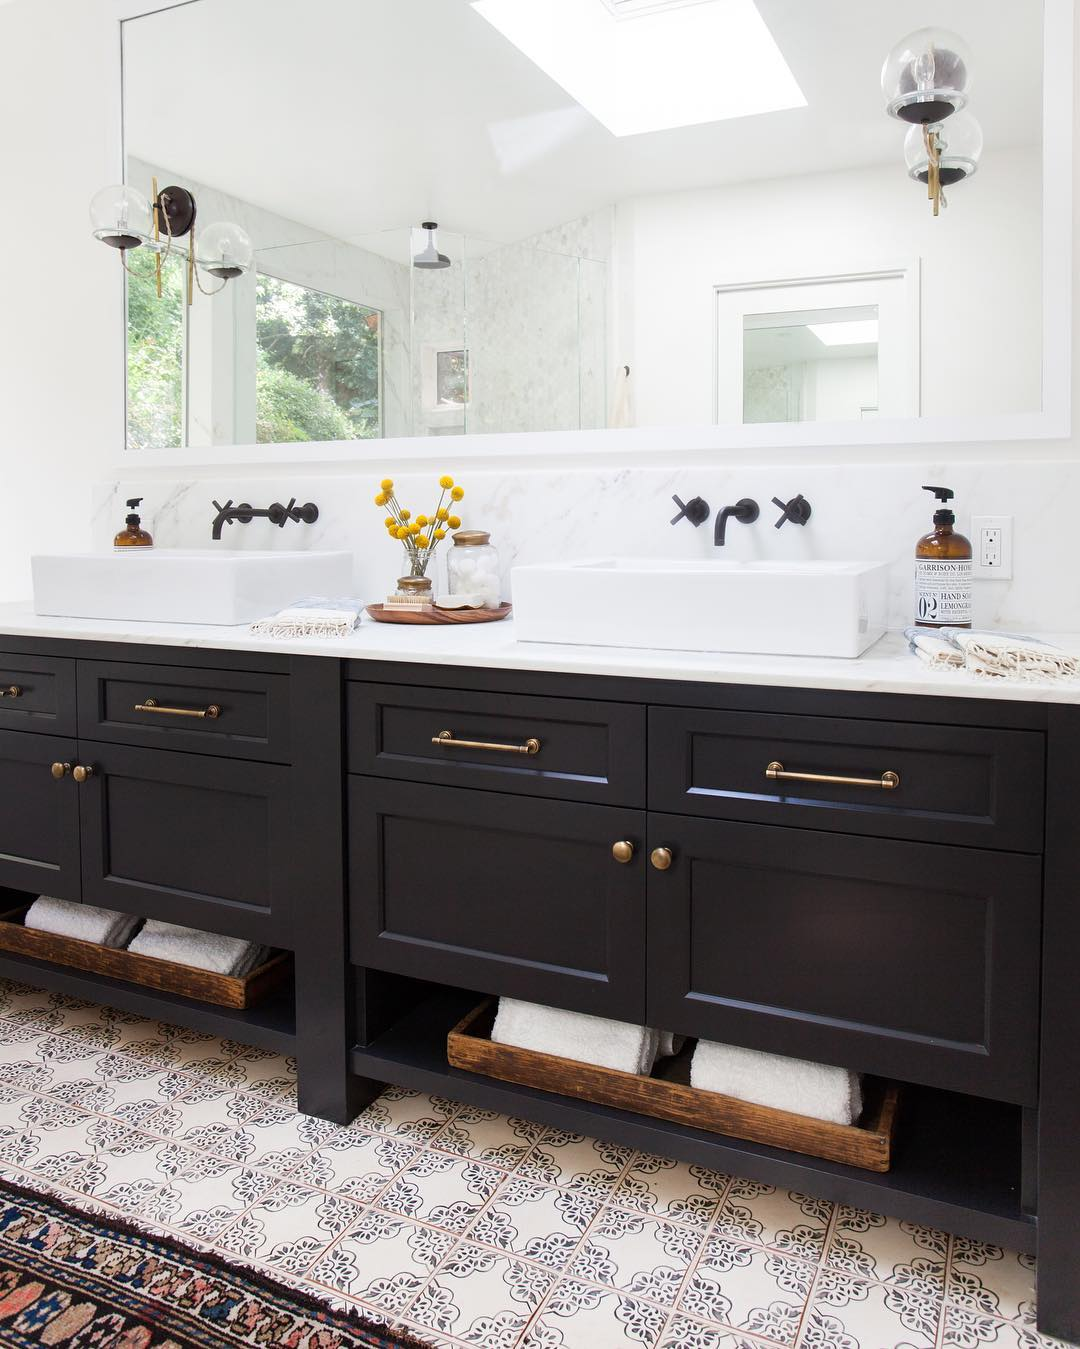 Black taps in white bathroom with black cupboards